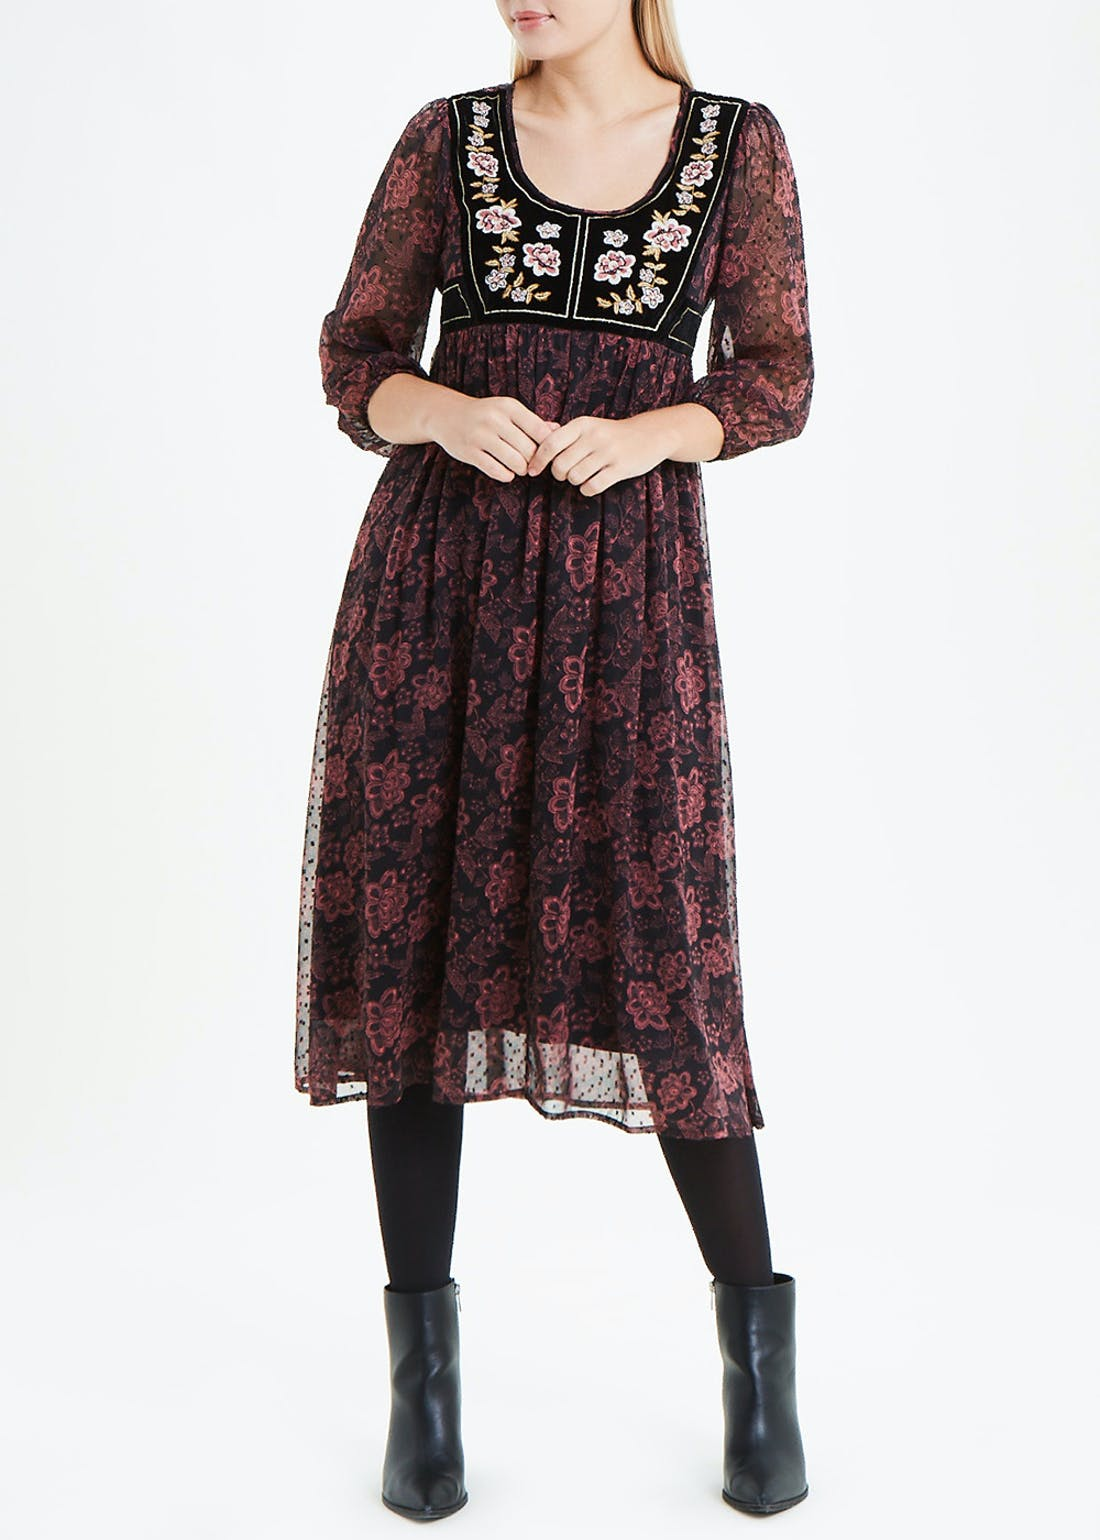 Falmer Black 3/4 Sleeve Velvet Yoke Dress